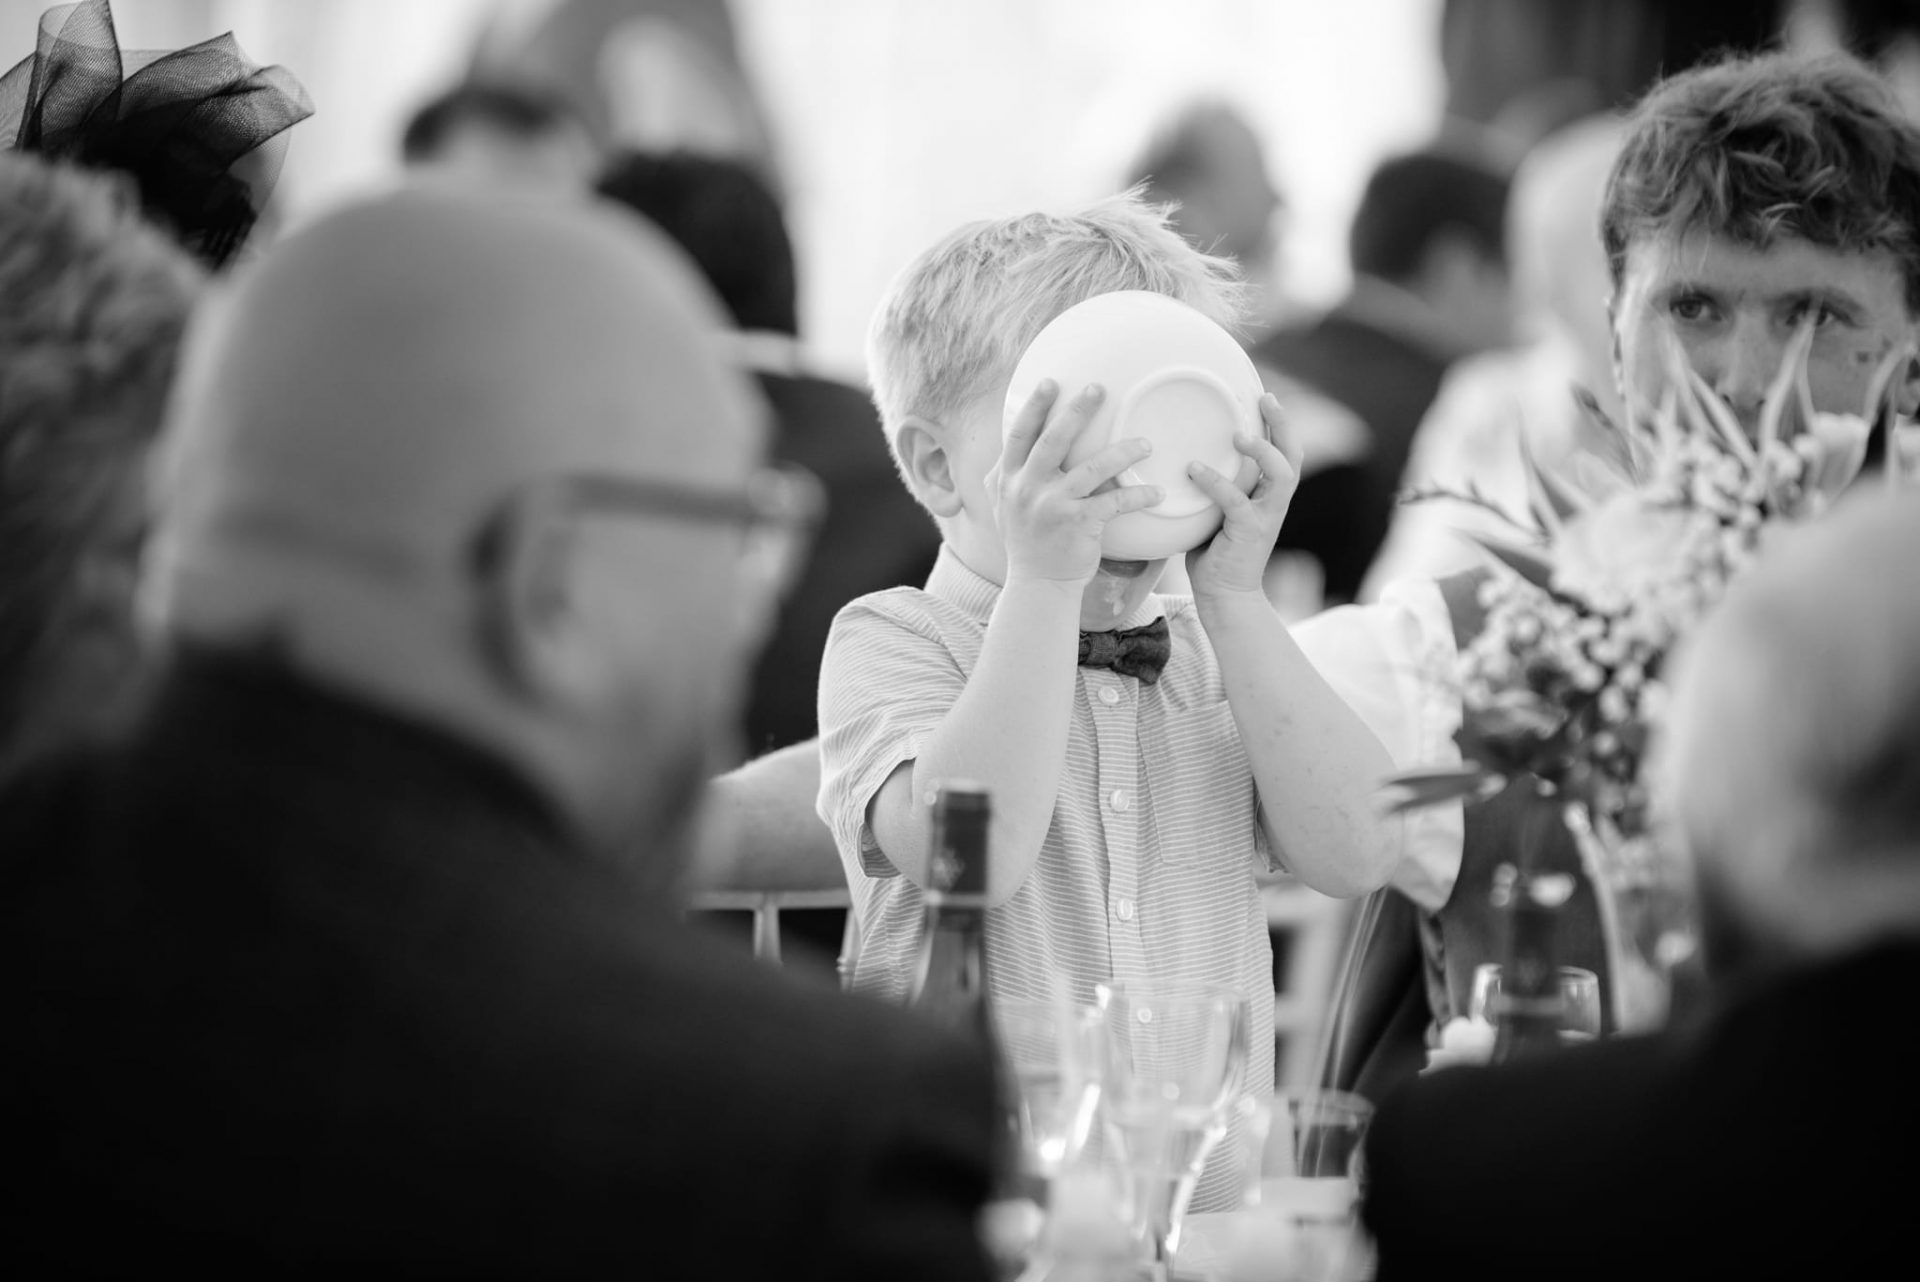 Young wedding guest drinking cream from bowl